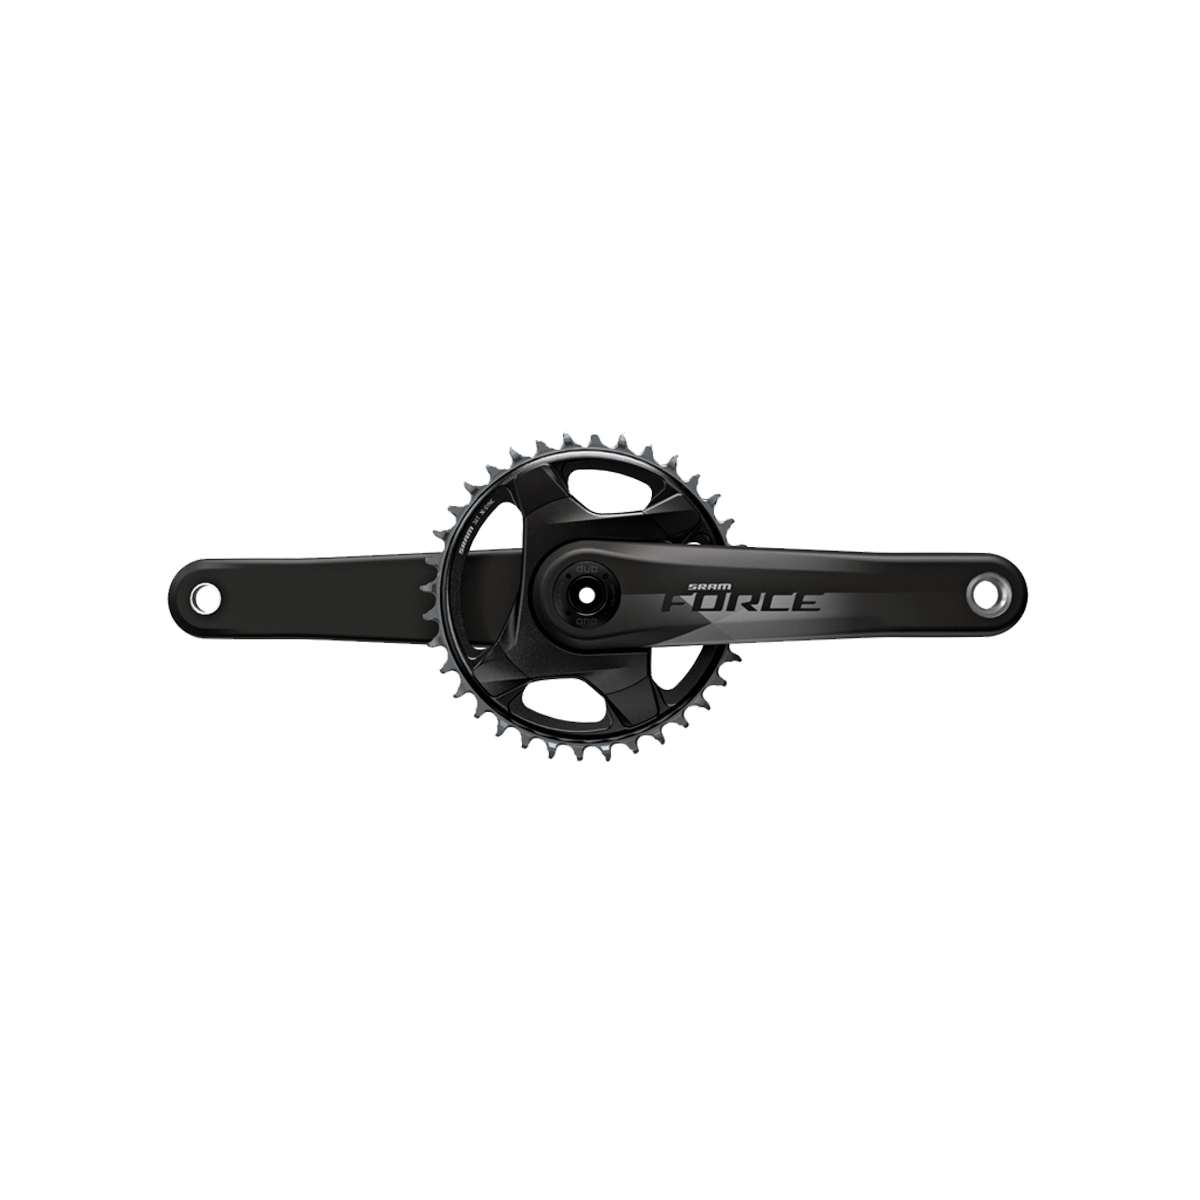 SRAM Components > Brakes & Chainsets 170 / 46 SRAM FORCE 1X D1 DUB CRANKSET (BB NOT INCLUDED)